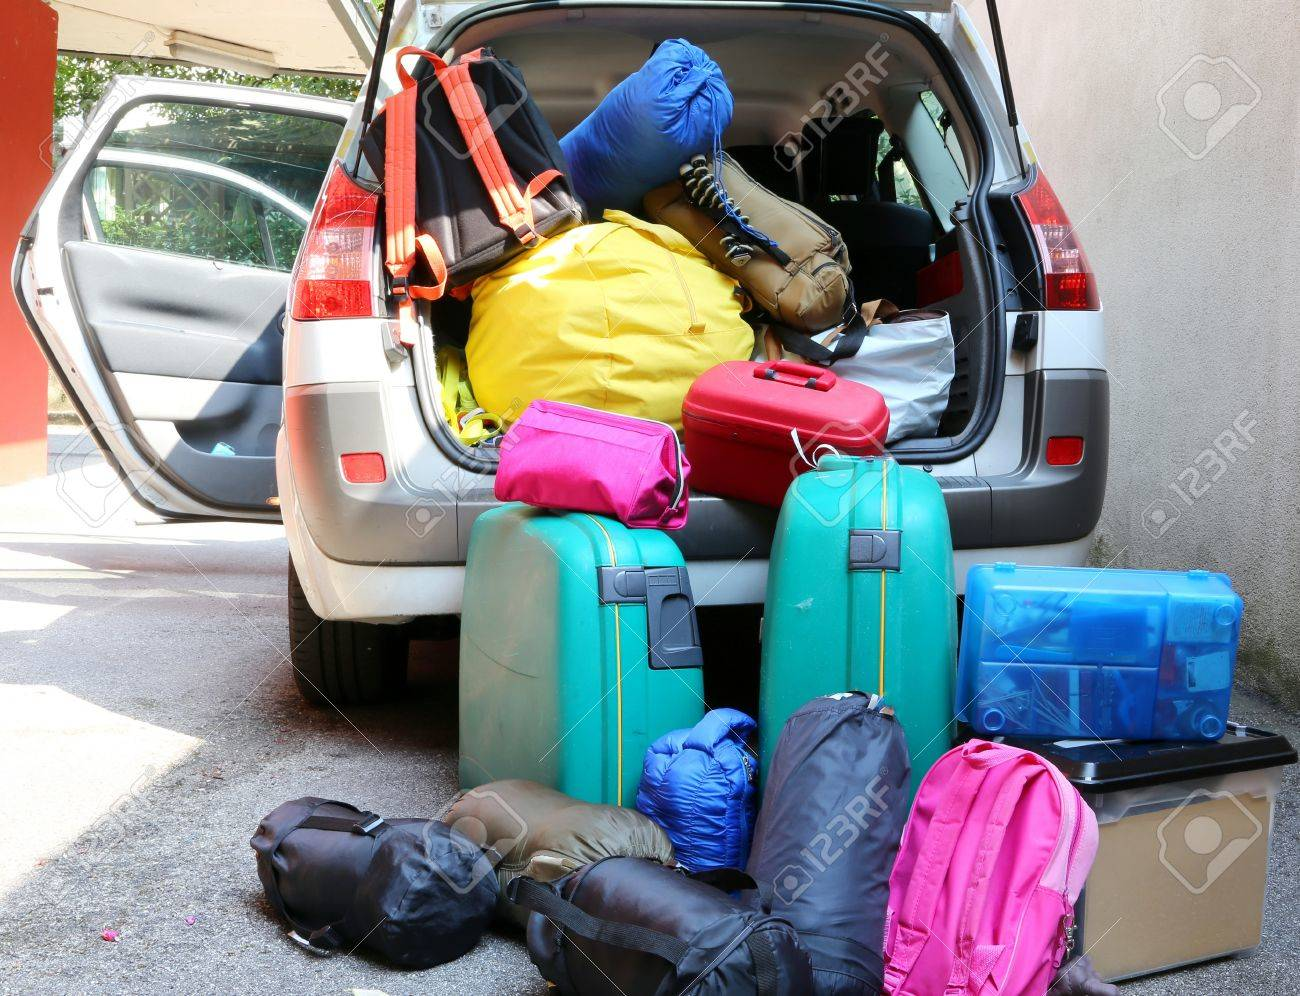 Car Overloaded With Suitcases And Duffle Bag For Family Travel Stock Photo